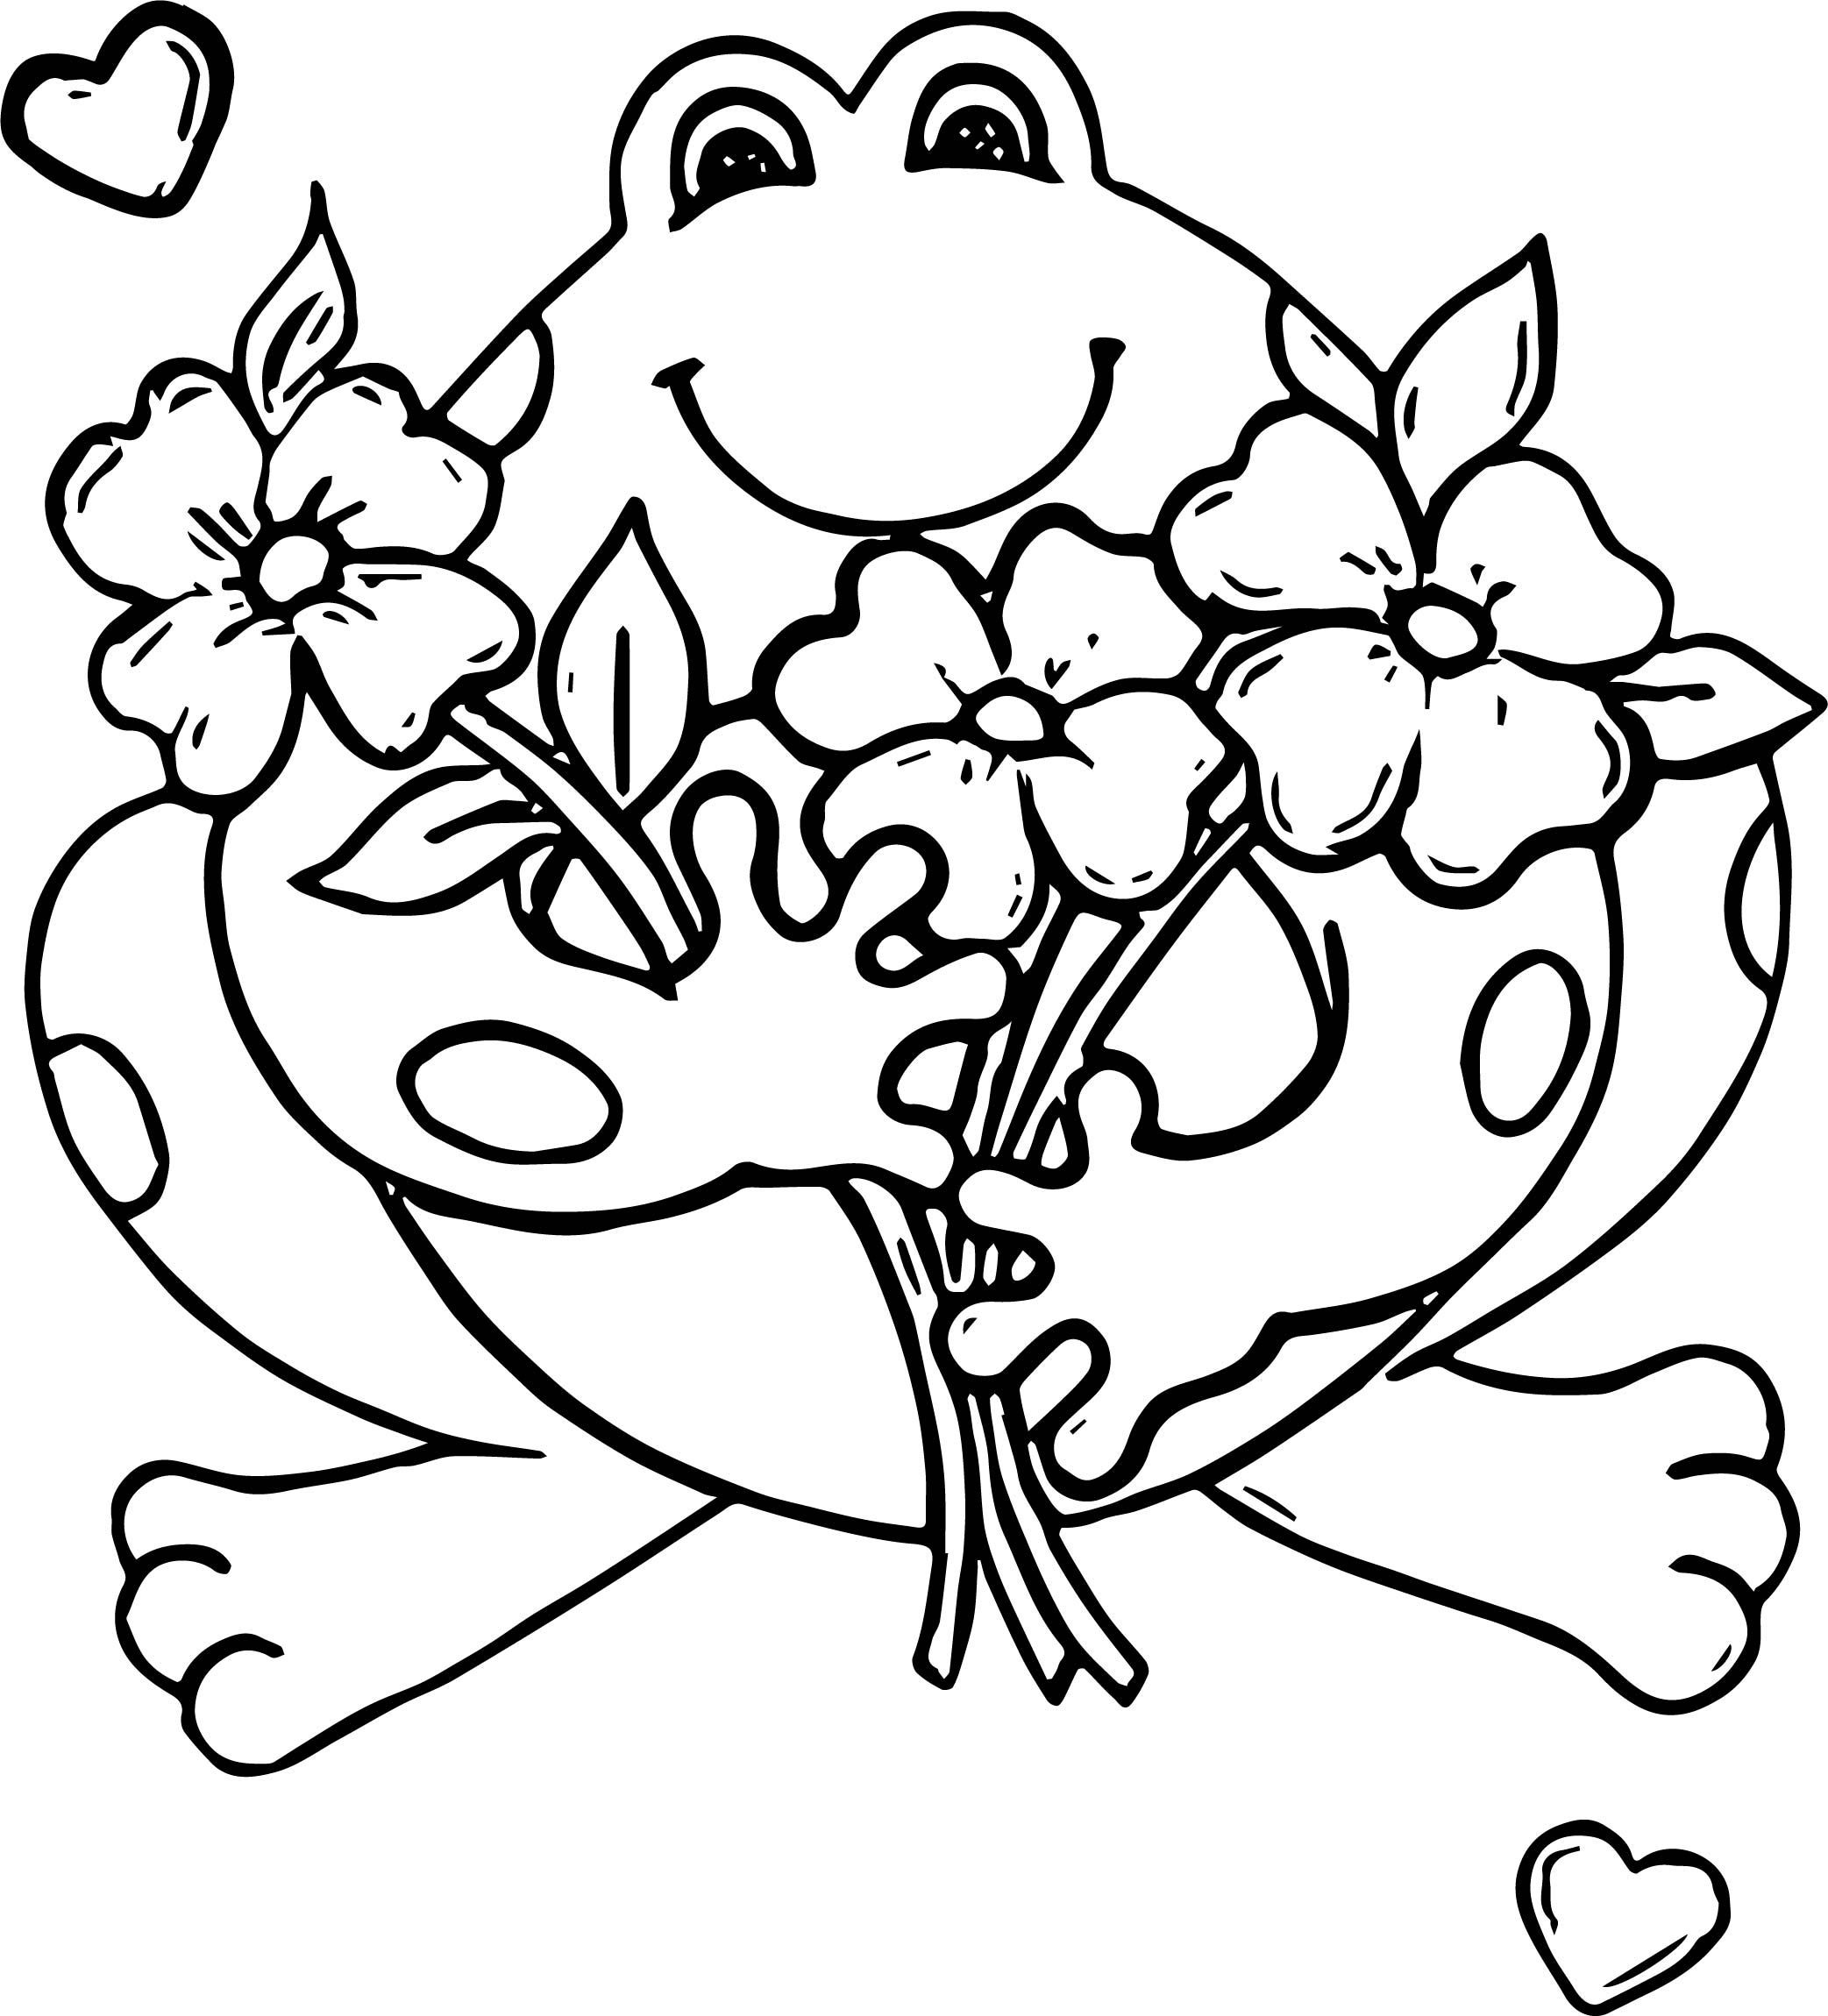 Flower Frog Coloring Page